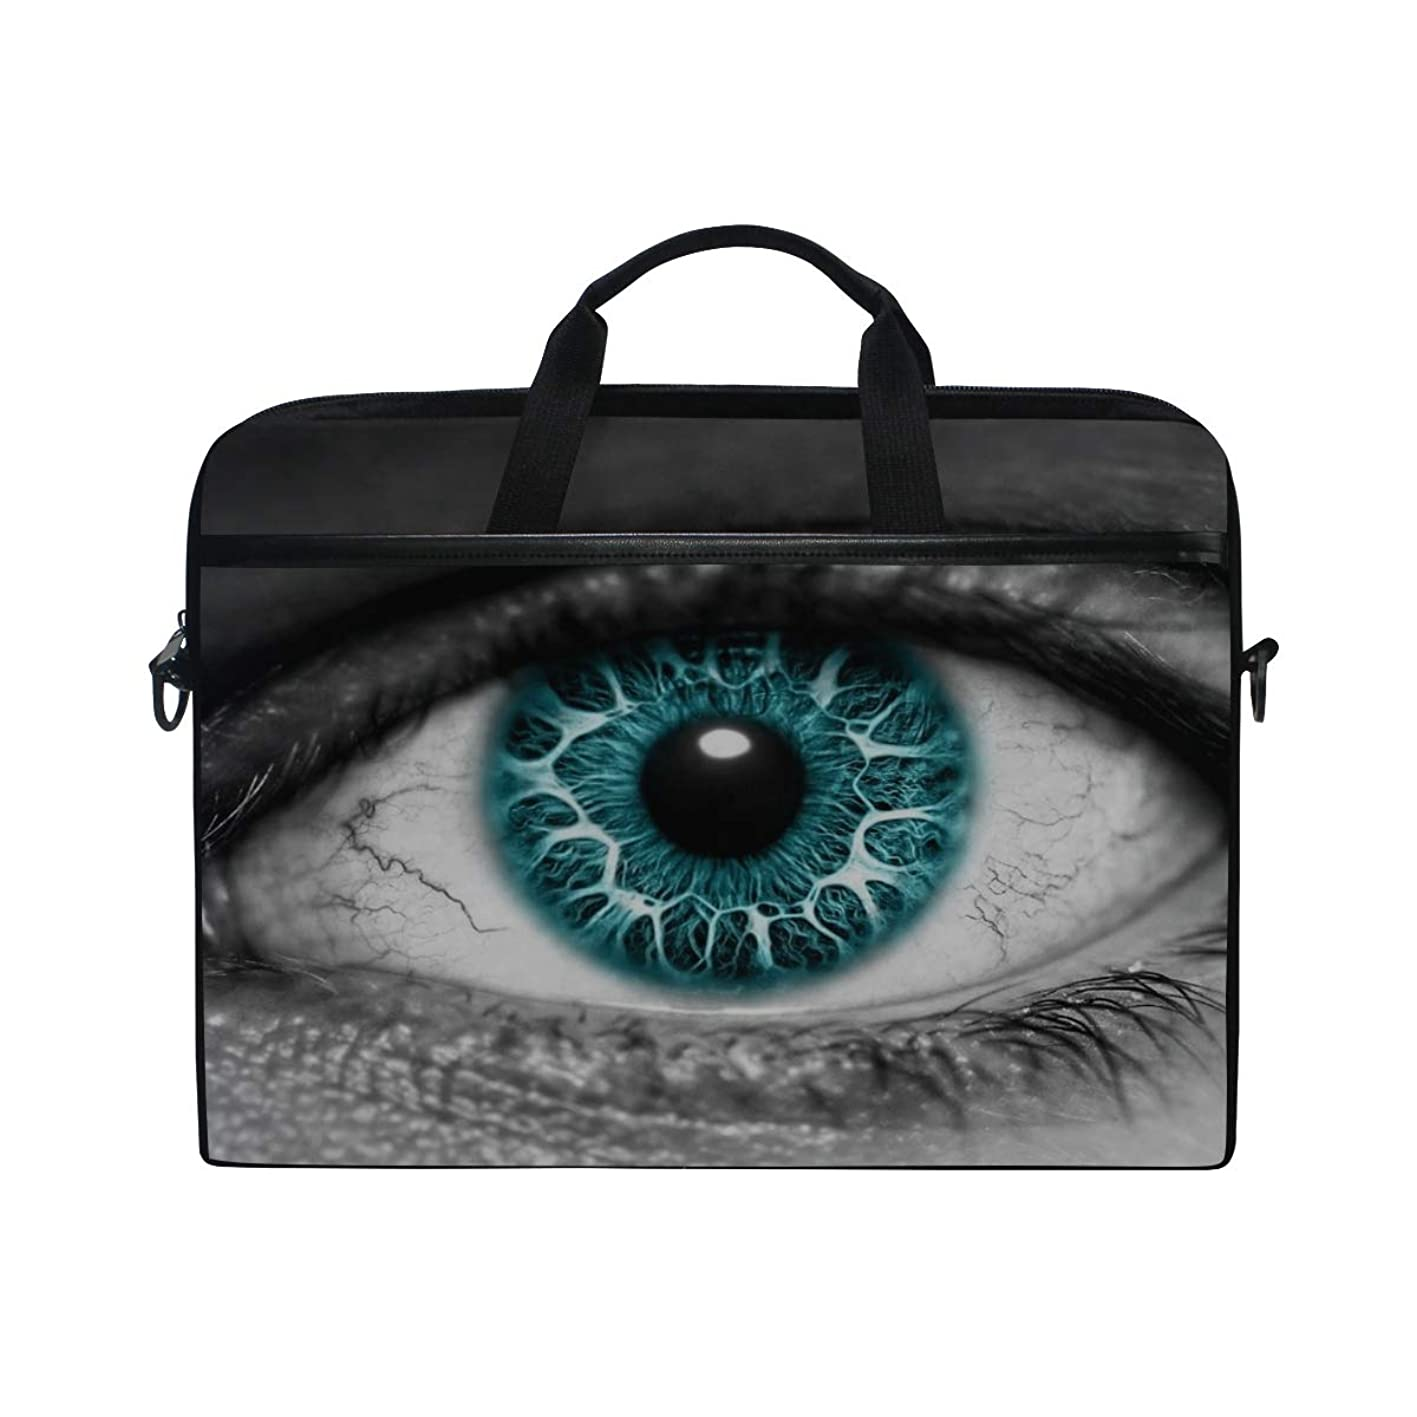 Rh Studio Laptop Bag Eye Lens Pupil Eyelashes Laptop Shoulder Messenger Bag Case Sleeve for 14 Inch to 15.6 Inch with Adjustable Notebook Shoulder Strap bwtvgpbgluc610